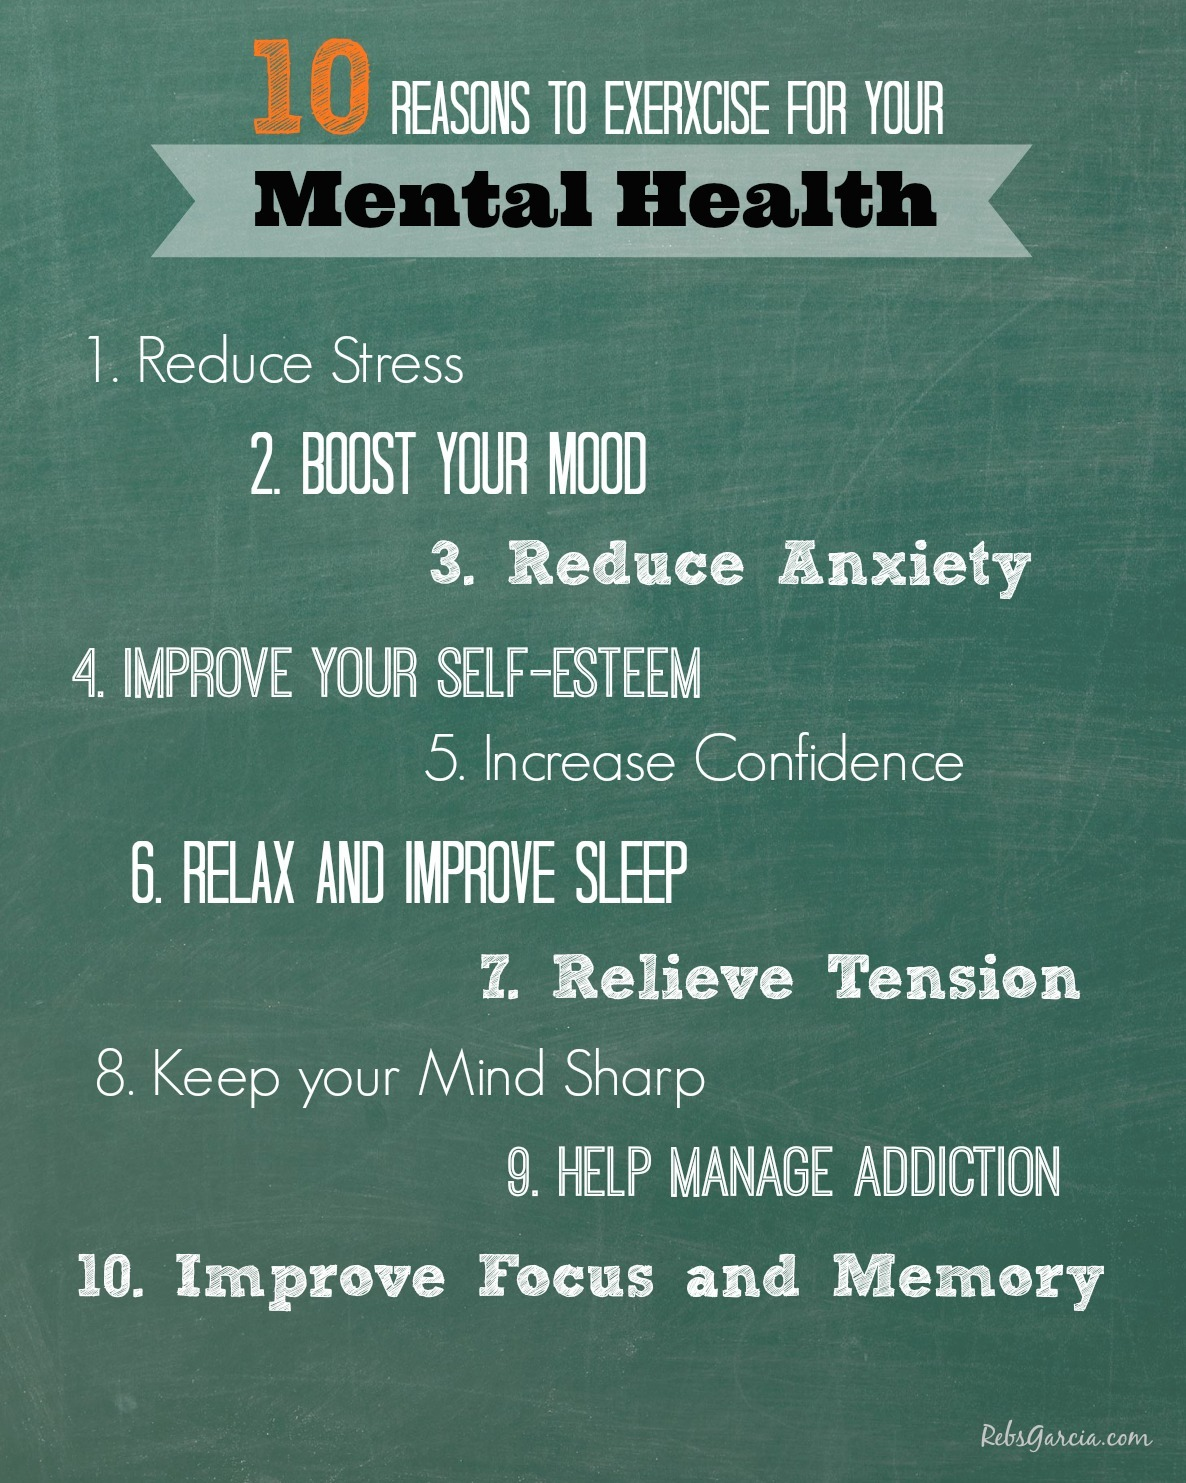 Physical Exercise And Mental Health